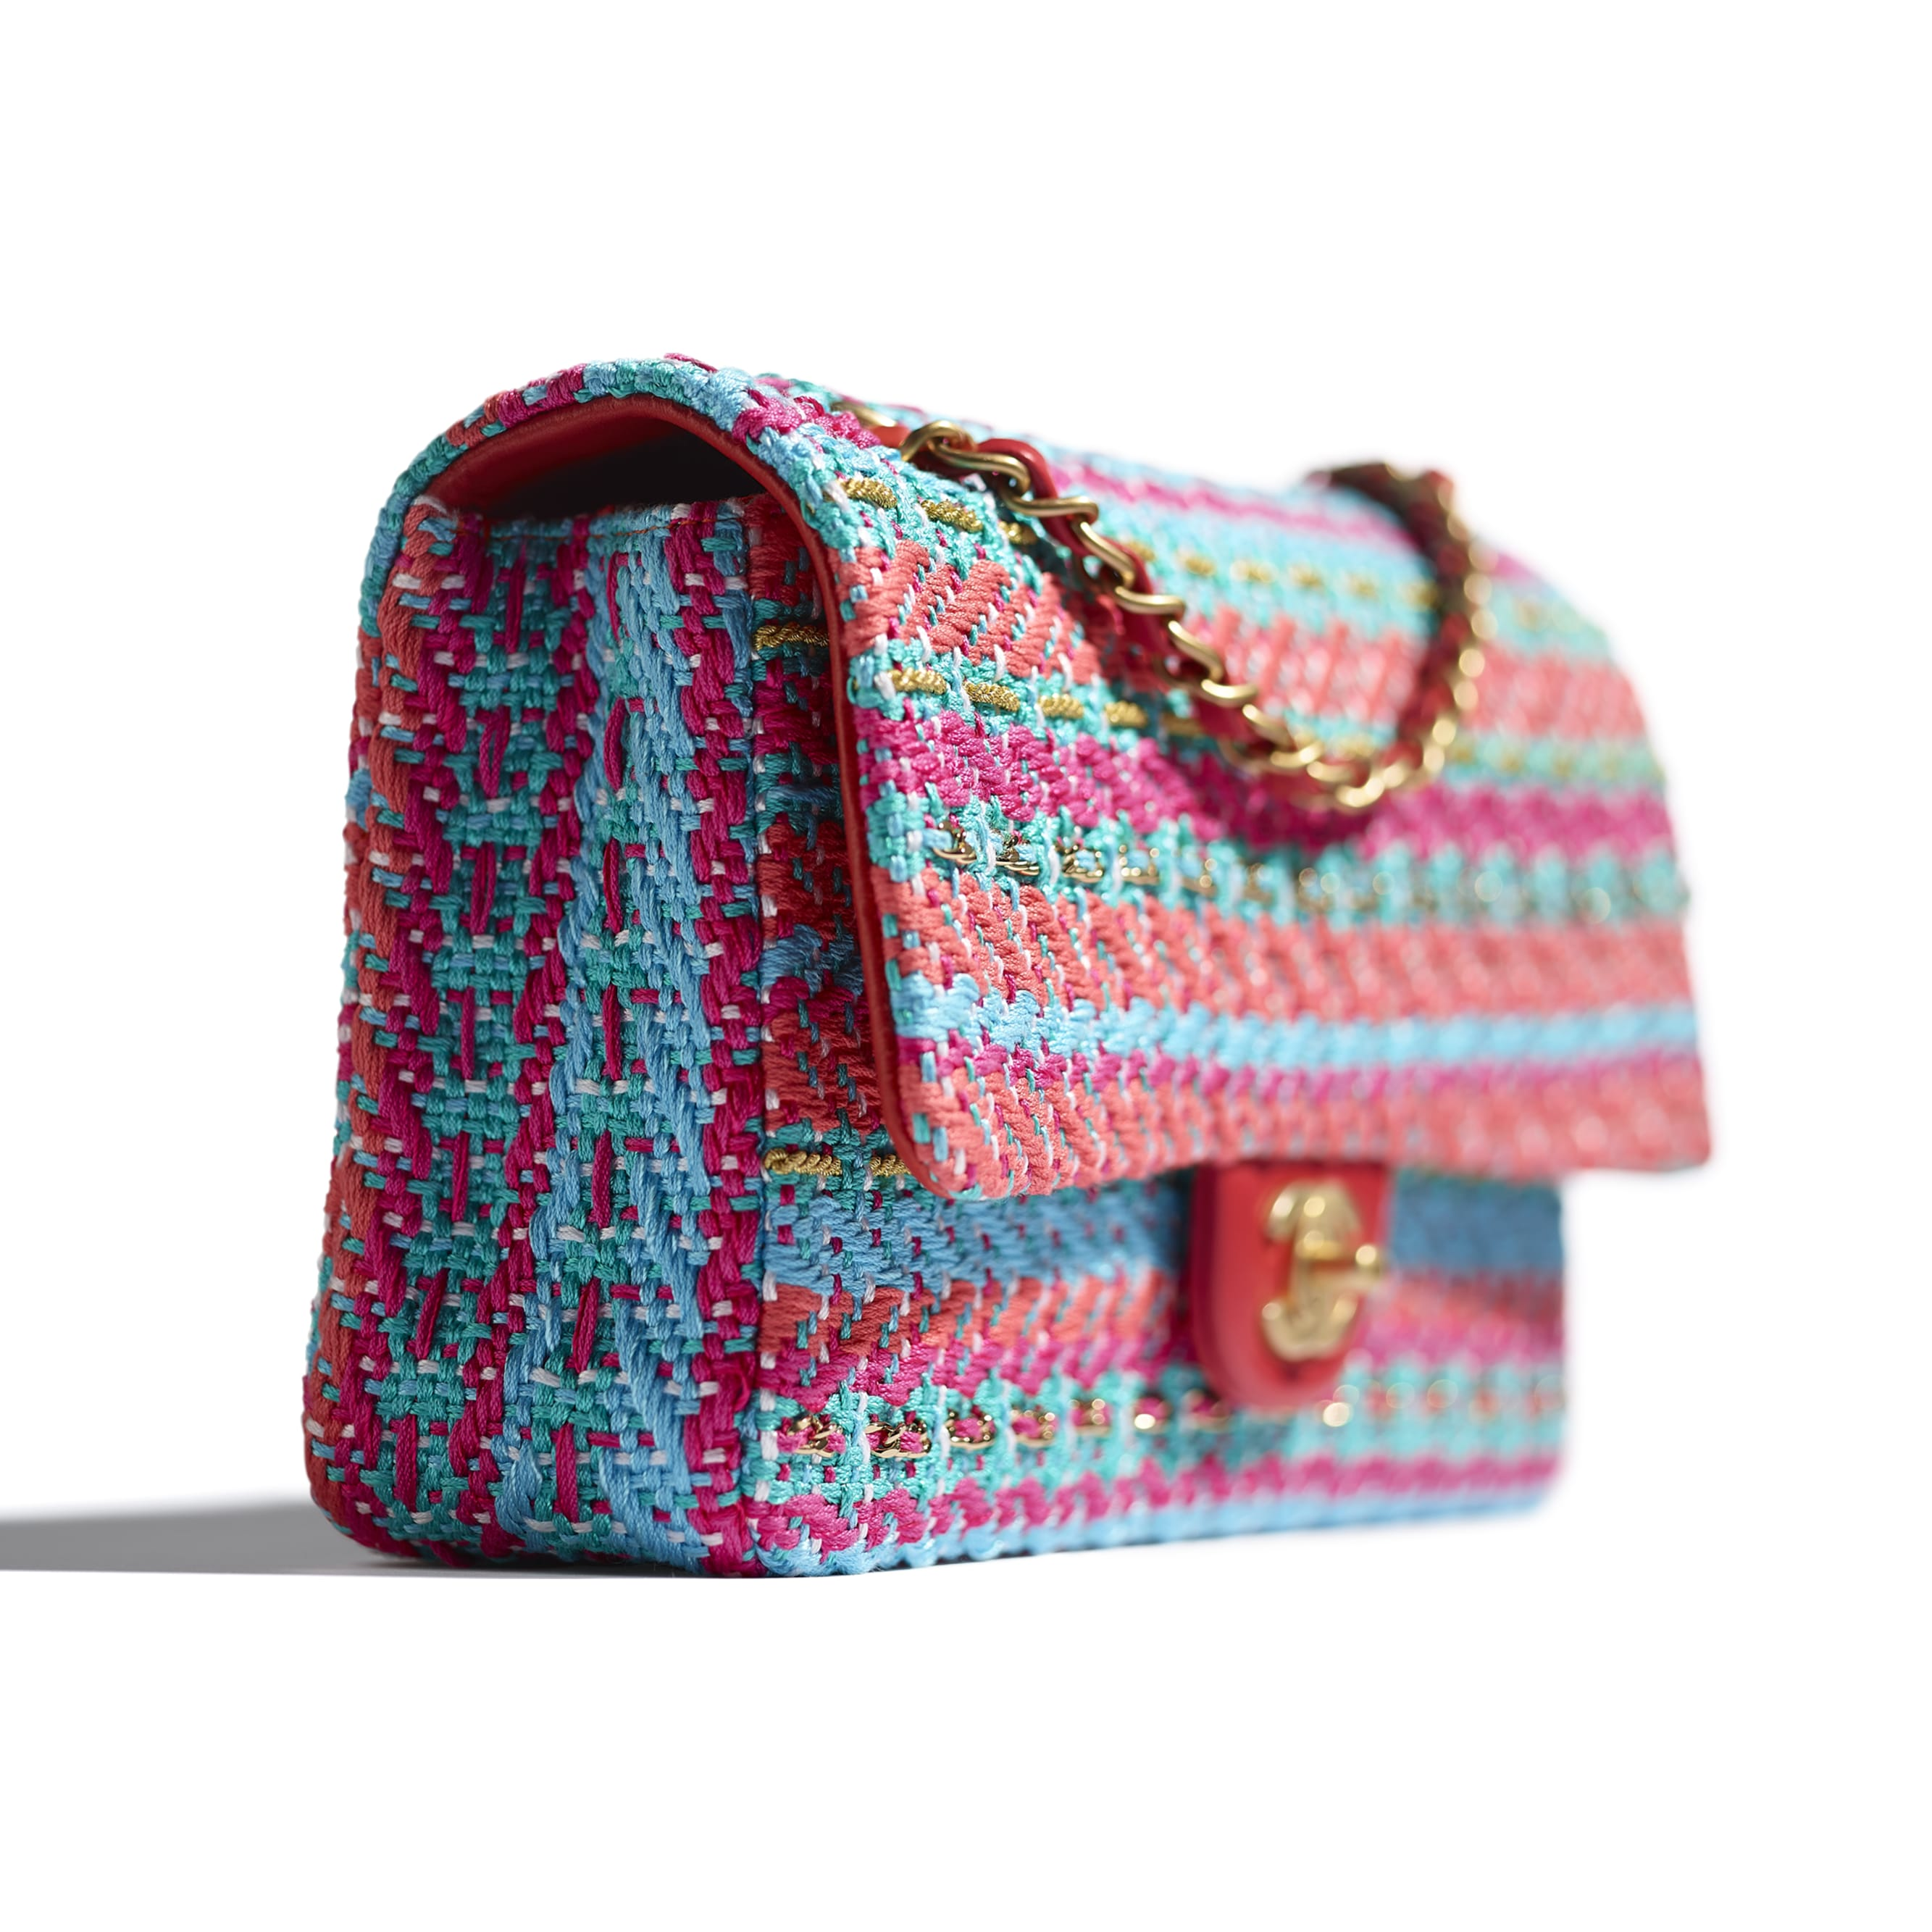 Flap Bag - Red, Fuchsia & Blue - Cotton, Mixed Fibers & Gold-Tone Metal - CHANEL - Extra view - see standard sized version